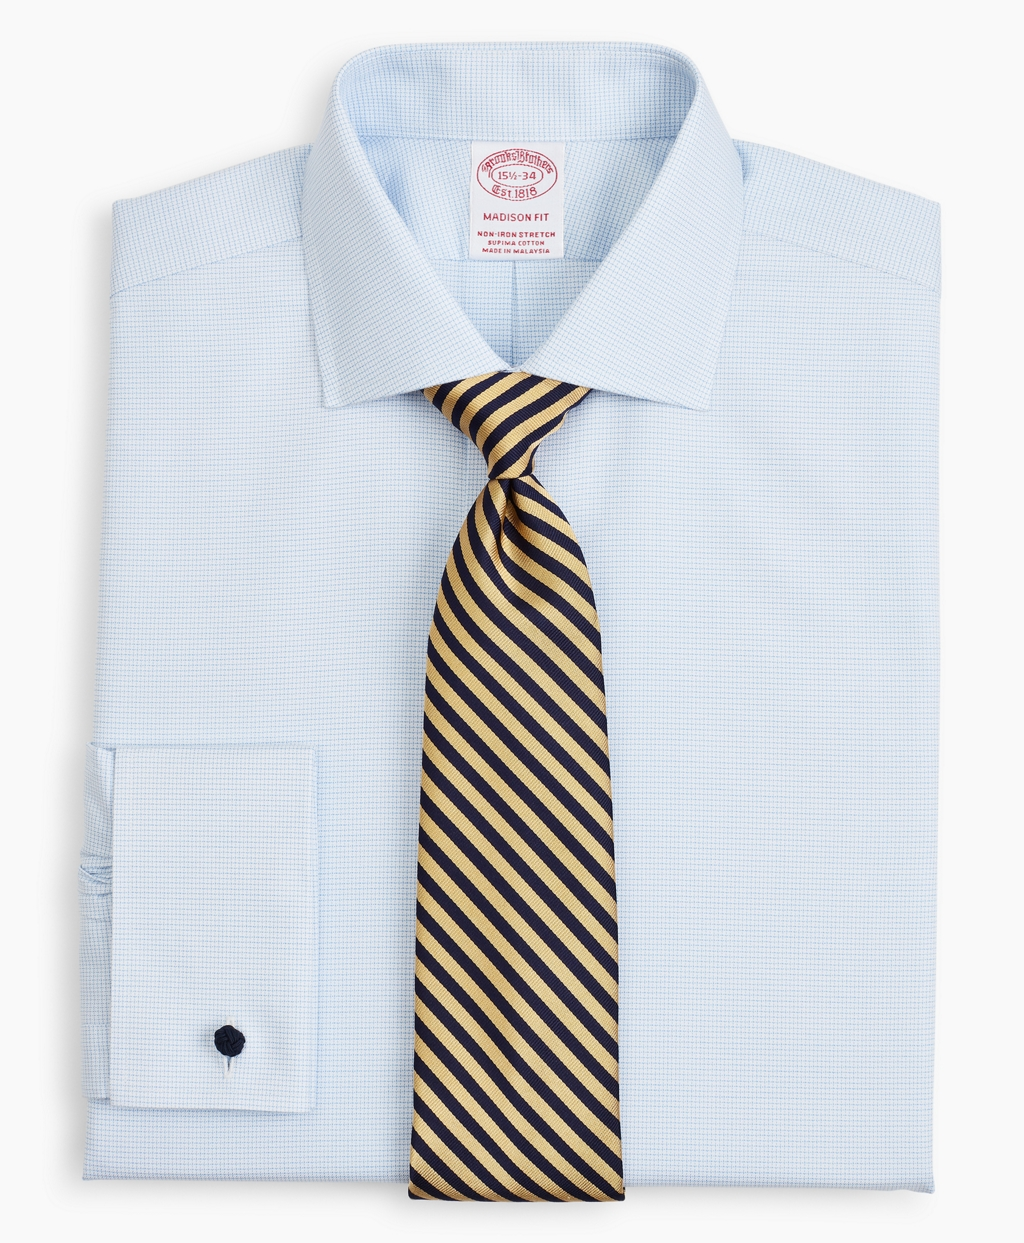 Brooksbrothers Stretch Madison Relaxed-Fit Dress Shirt, Non-Iron Twill English Collar French Cuff Micro-Check